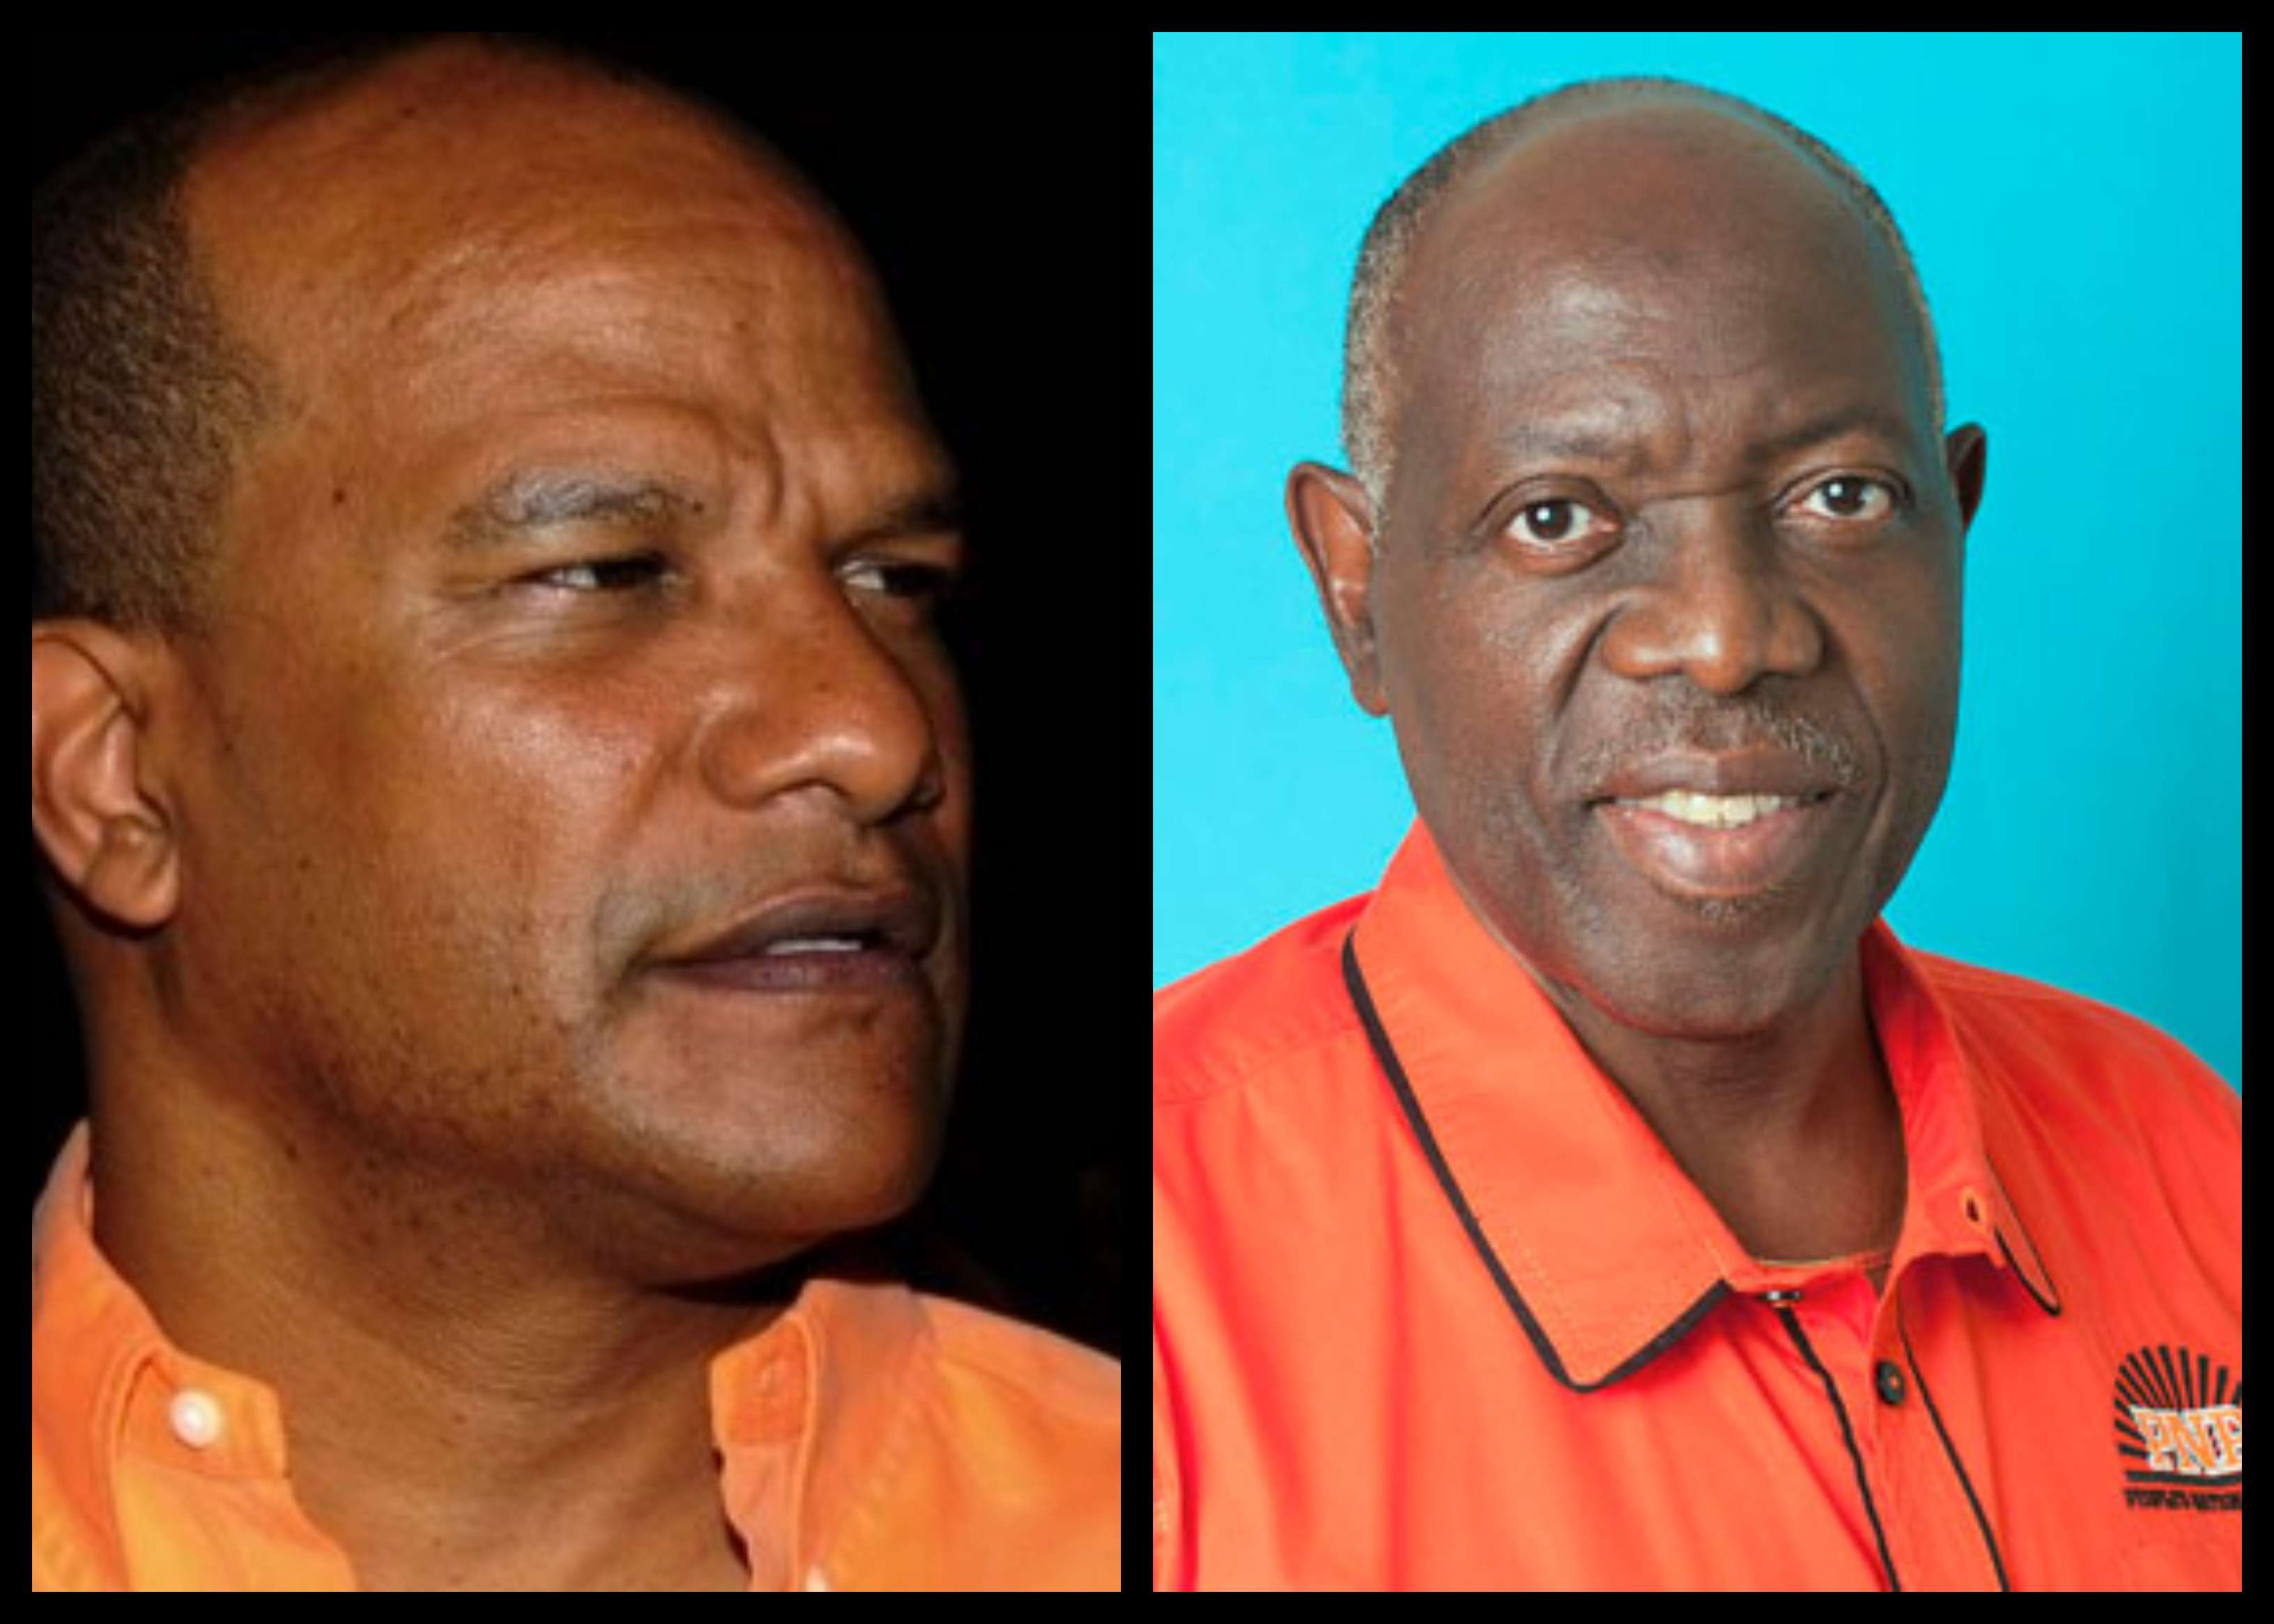 Dr. Phillips' Sluggish Appeal to Voters Influenced Support for Bunting – Dr. Ferguson